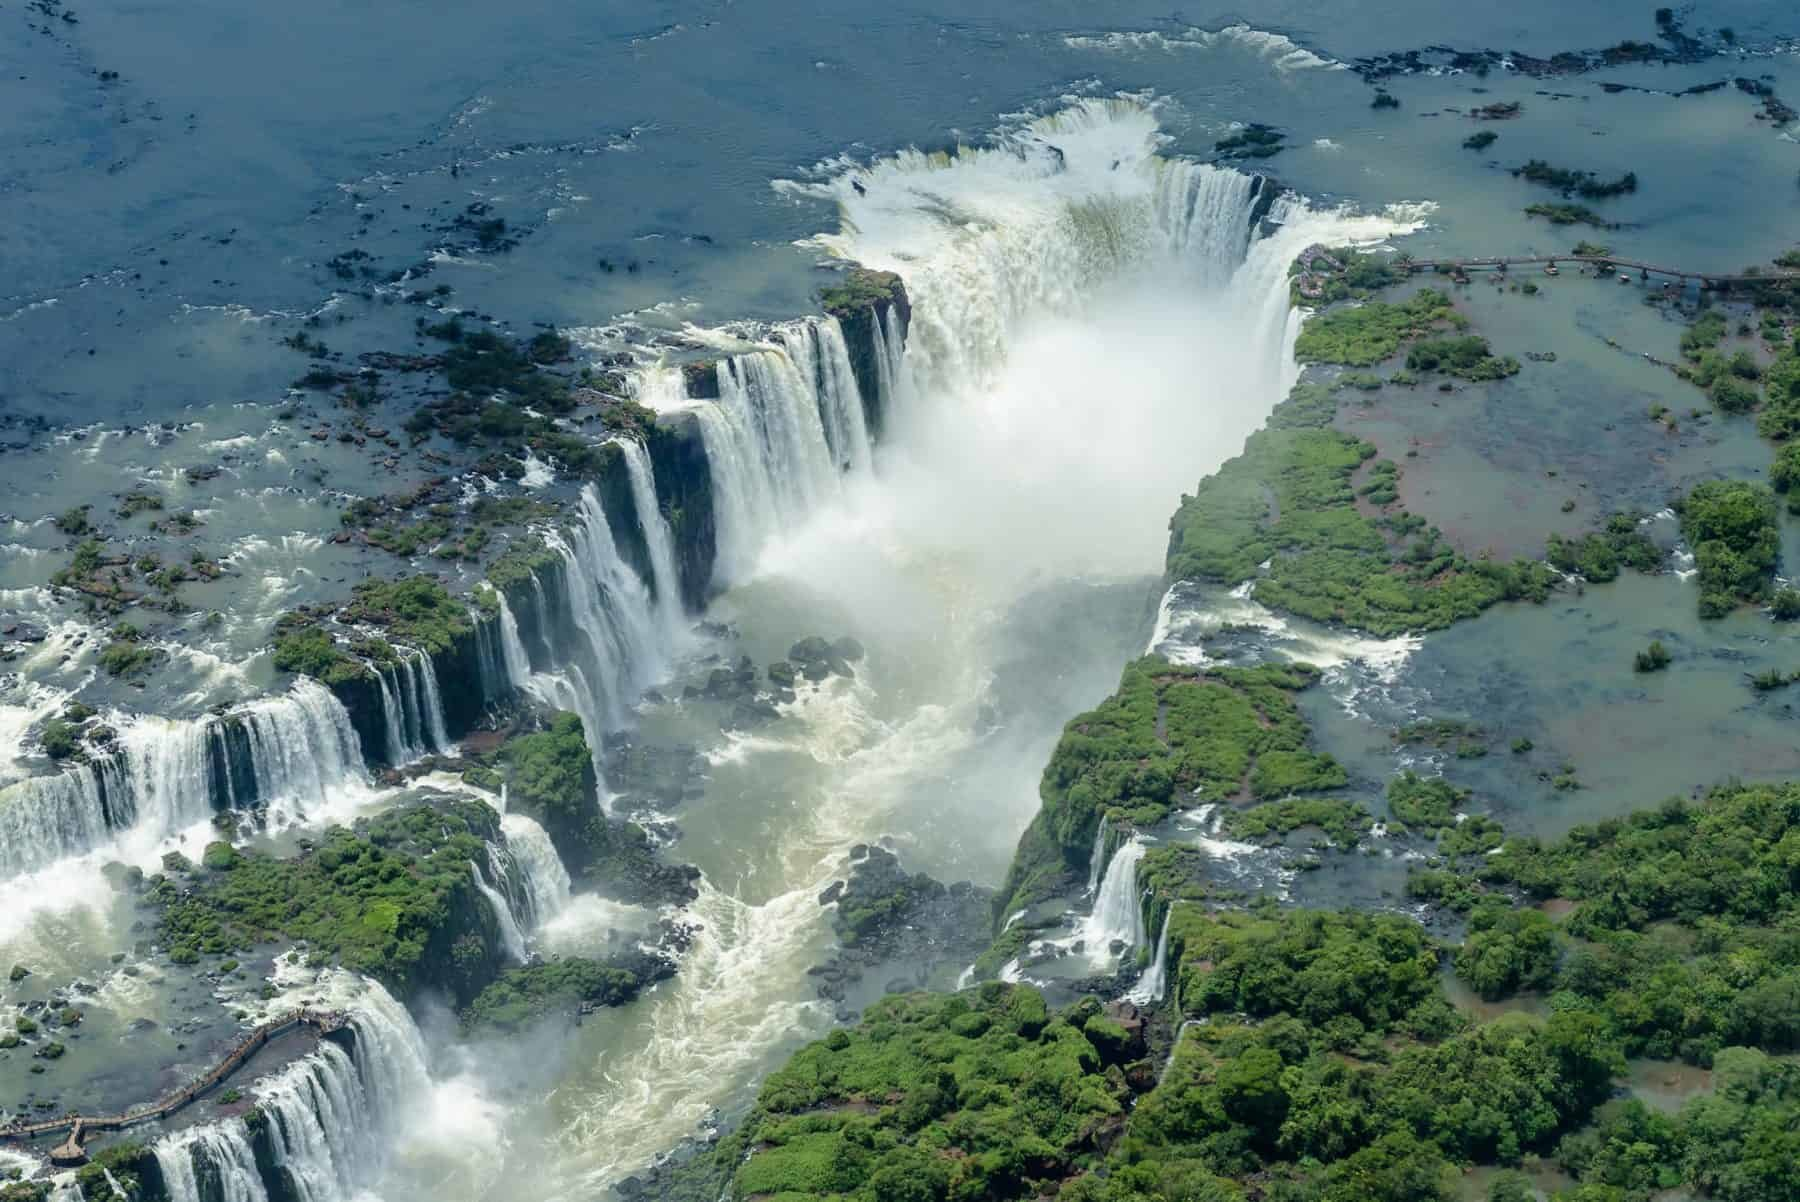 Iguazu waterfalls, Argentina and Brazil